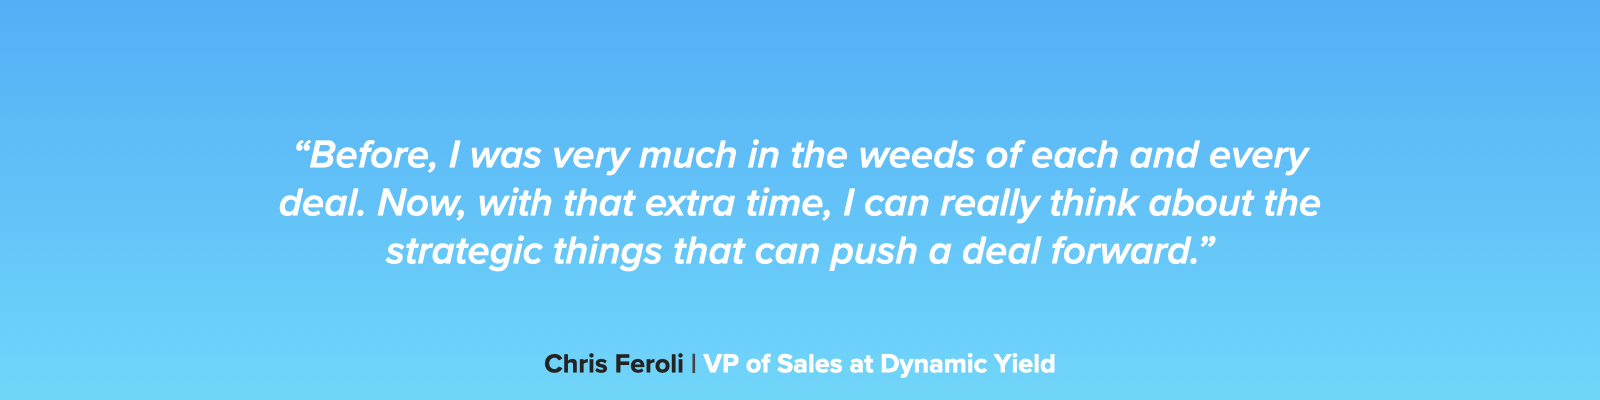 Dynamic Yield Quote #5.001-2